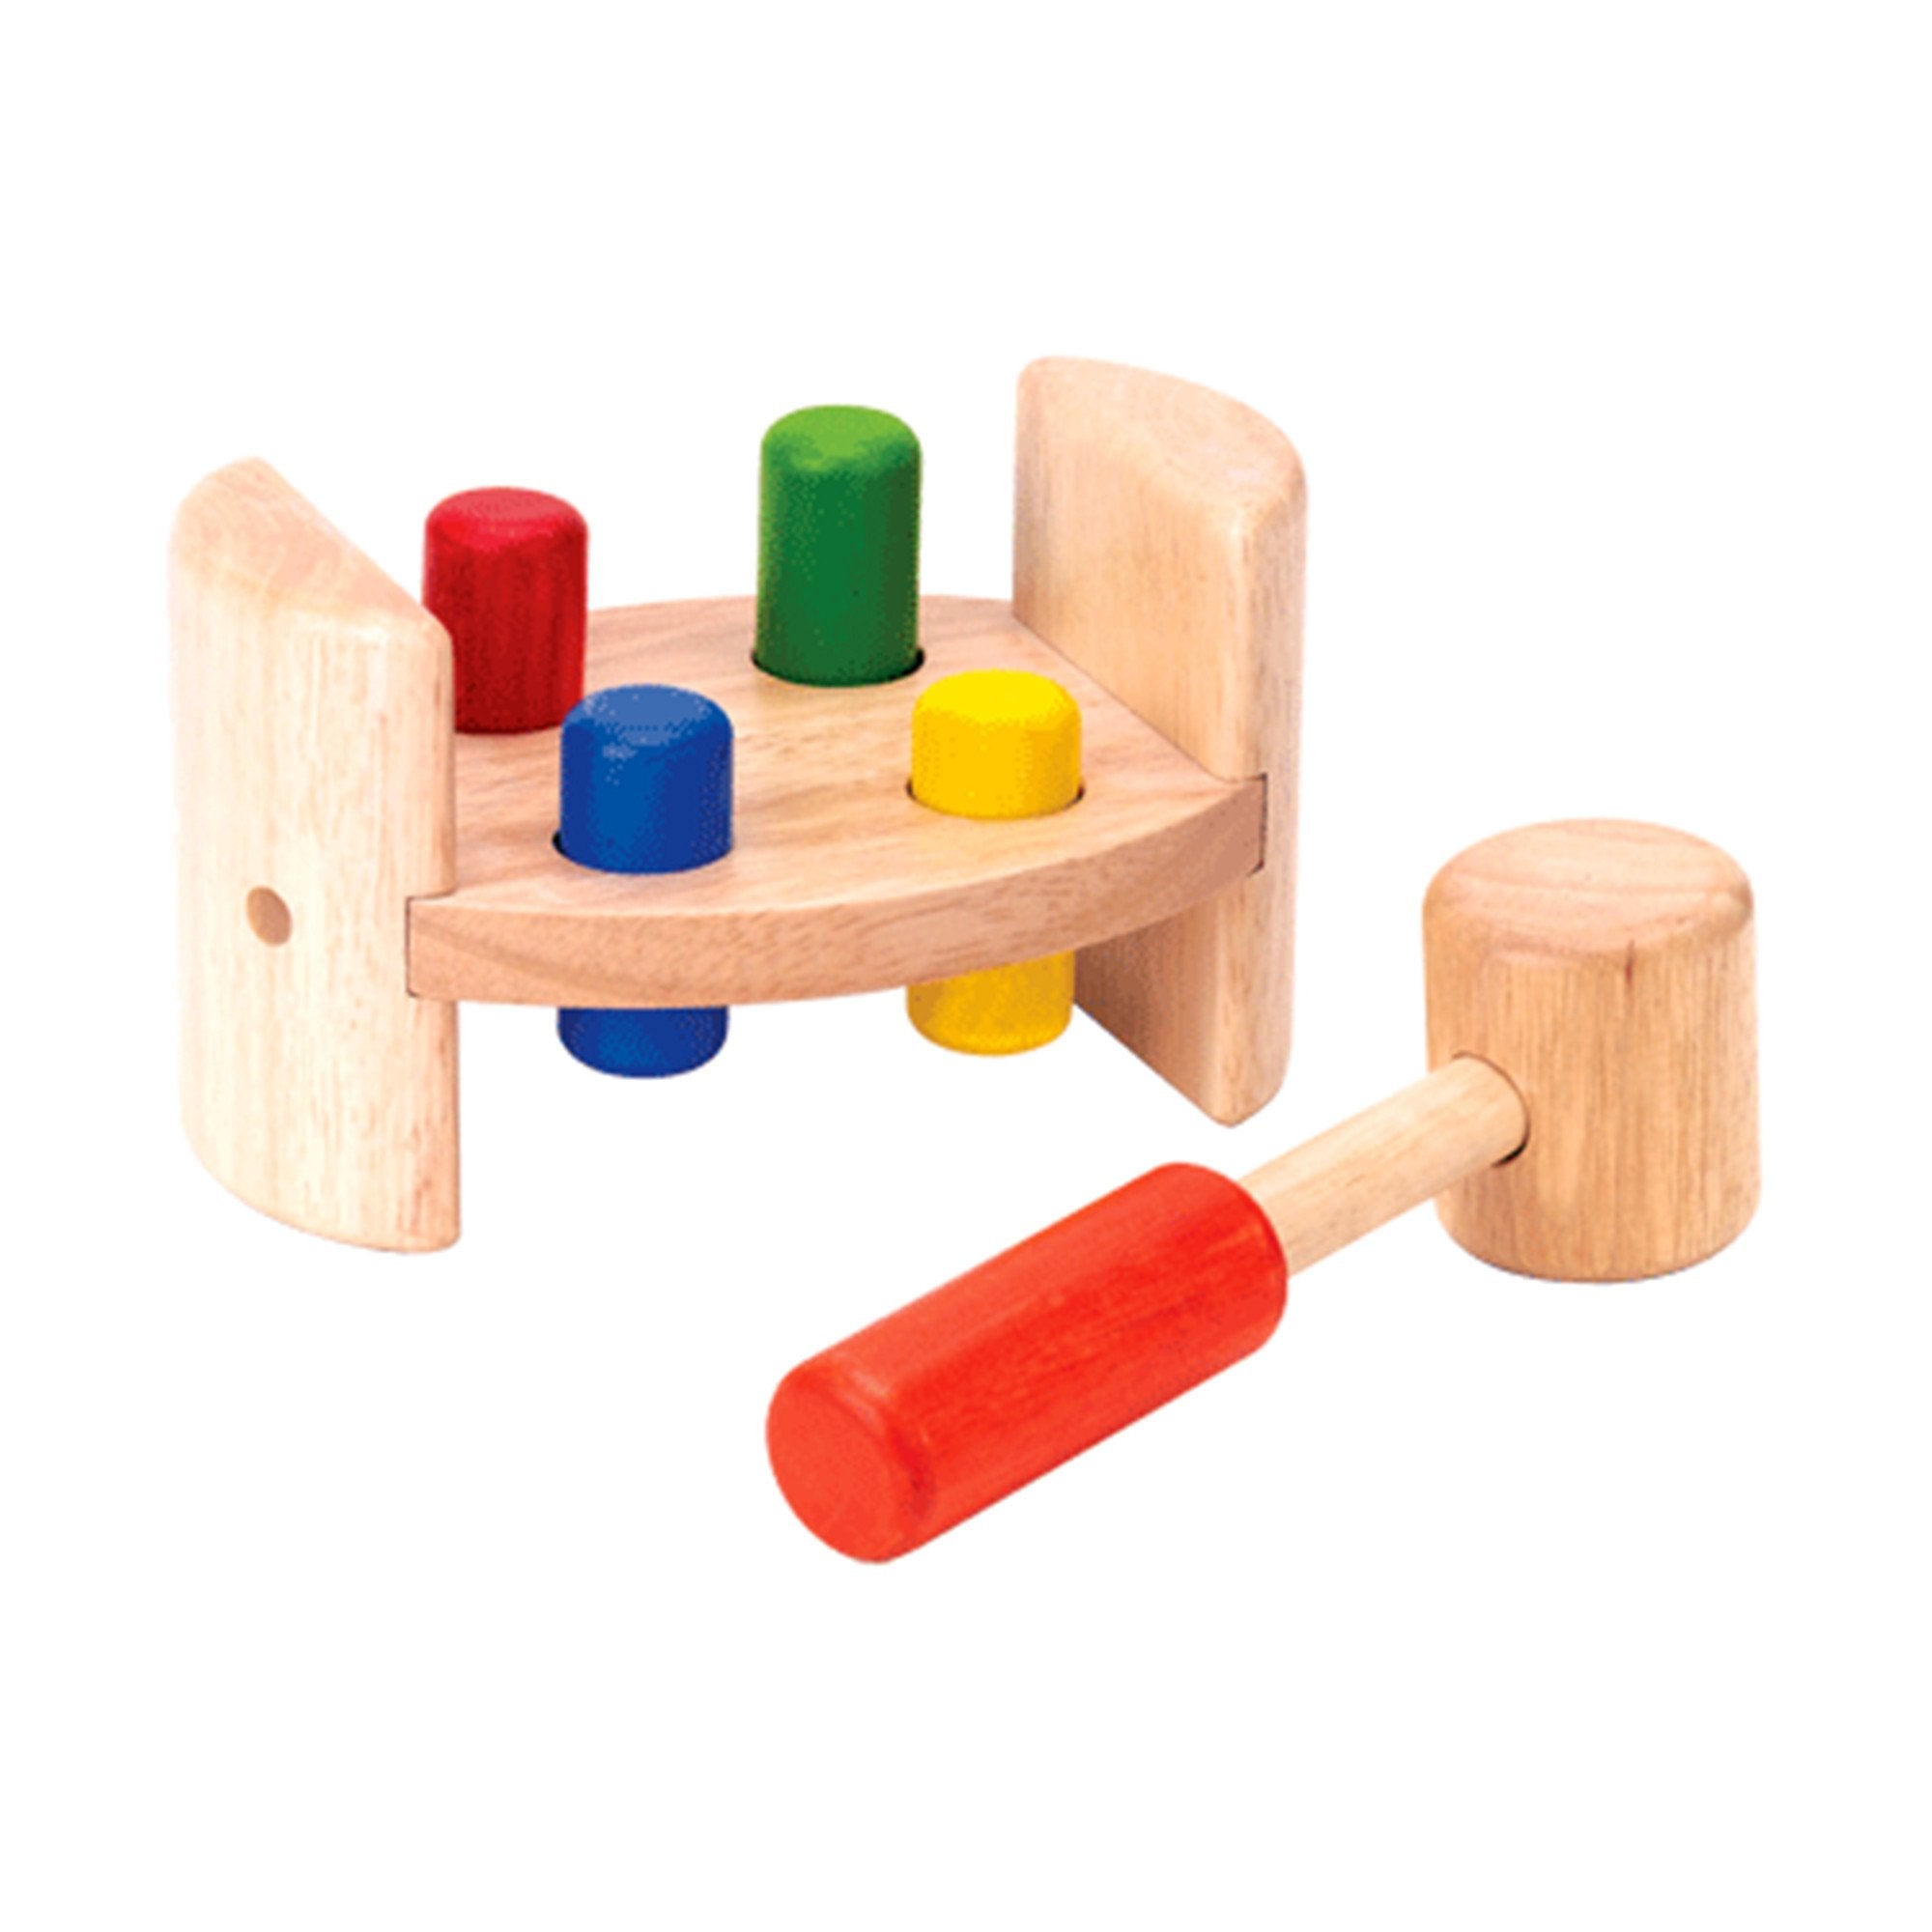 Wooden Toy Hammer and Roll Bench with Mallot Voila Toys at Little Earth Nest Eco Shop